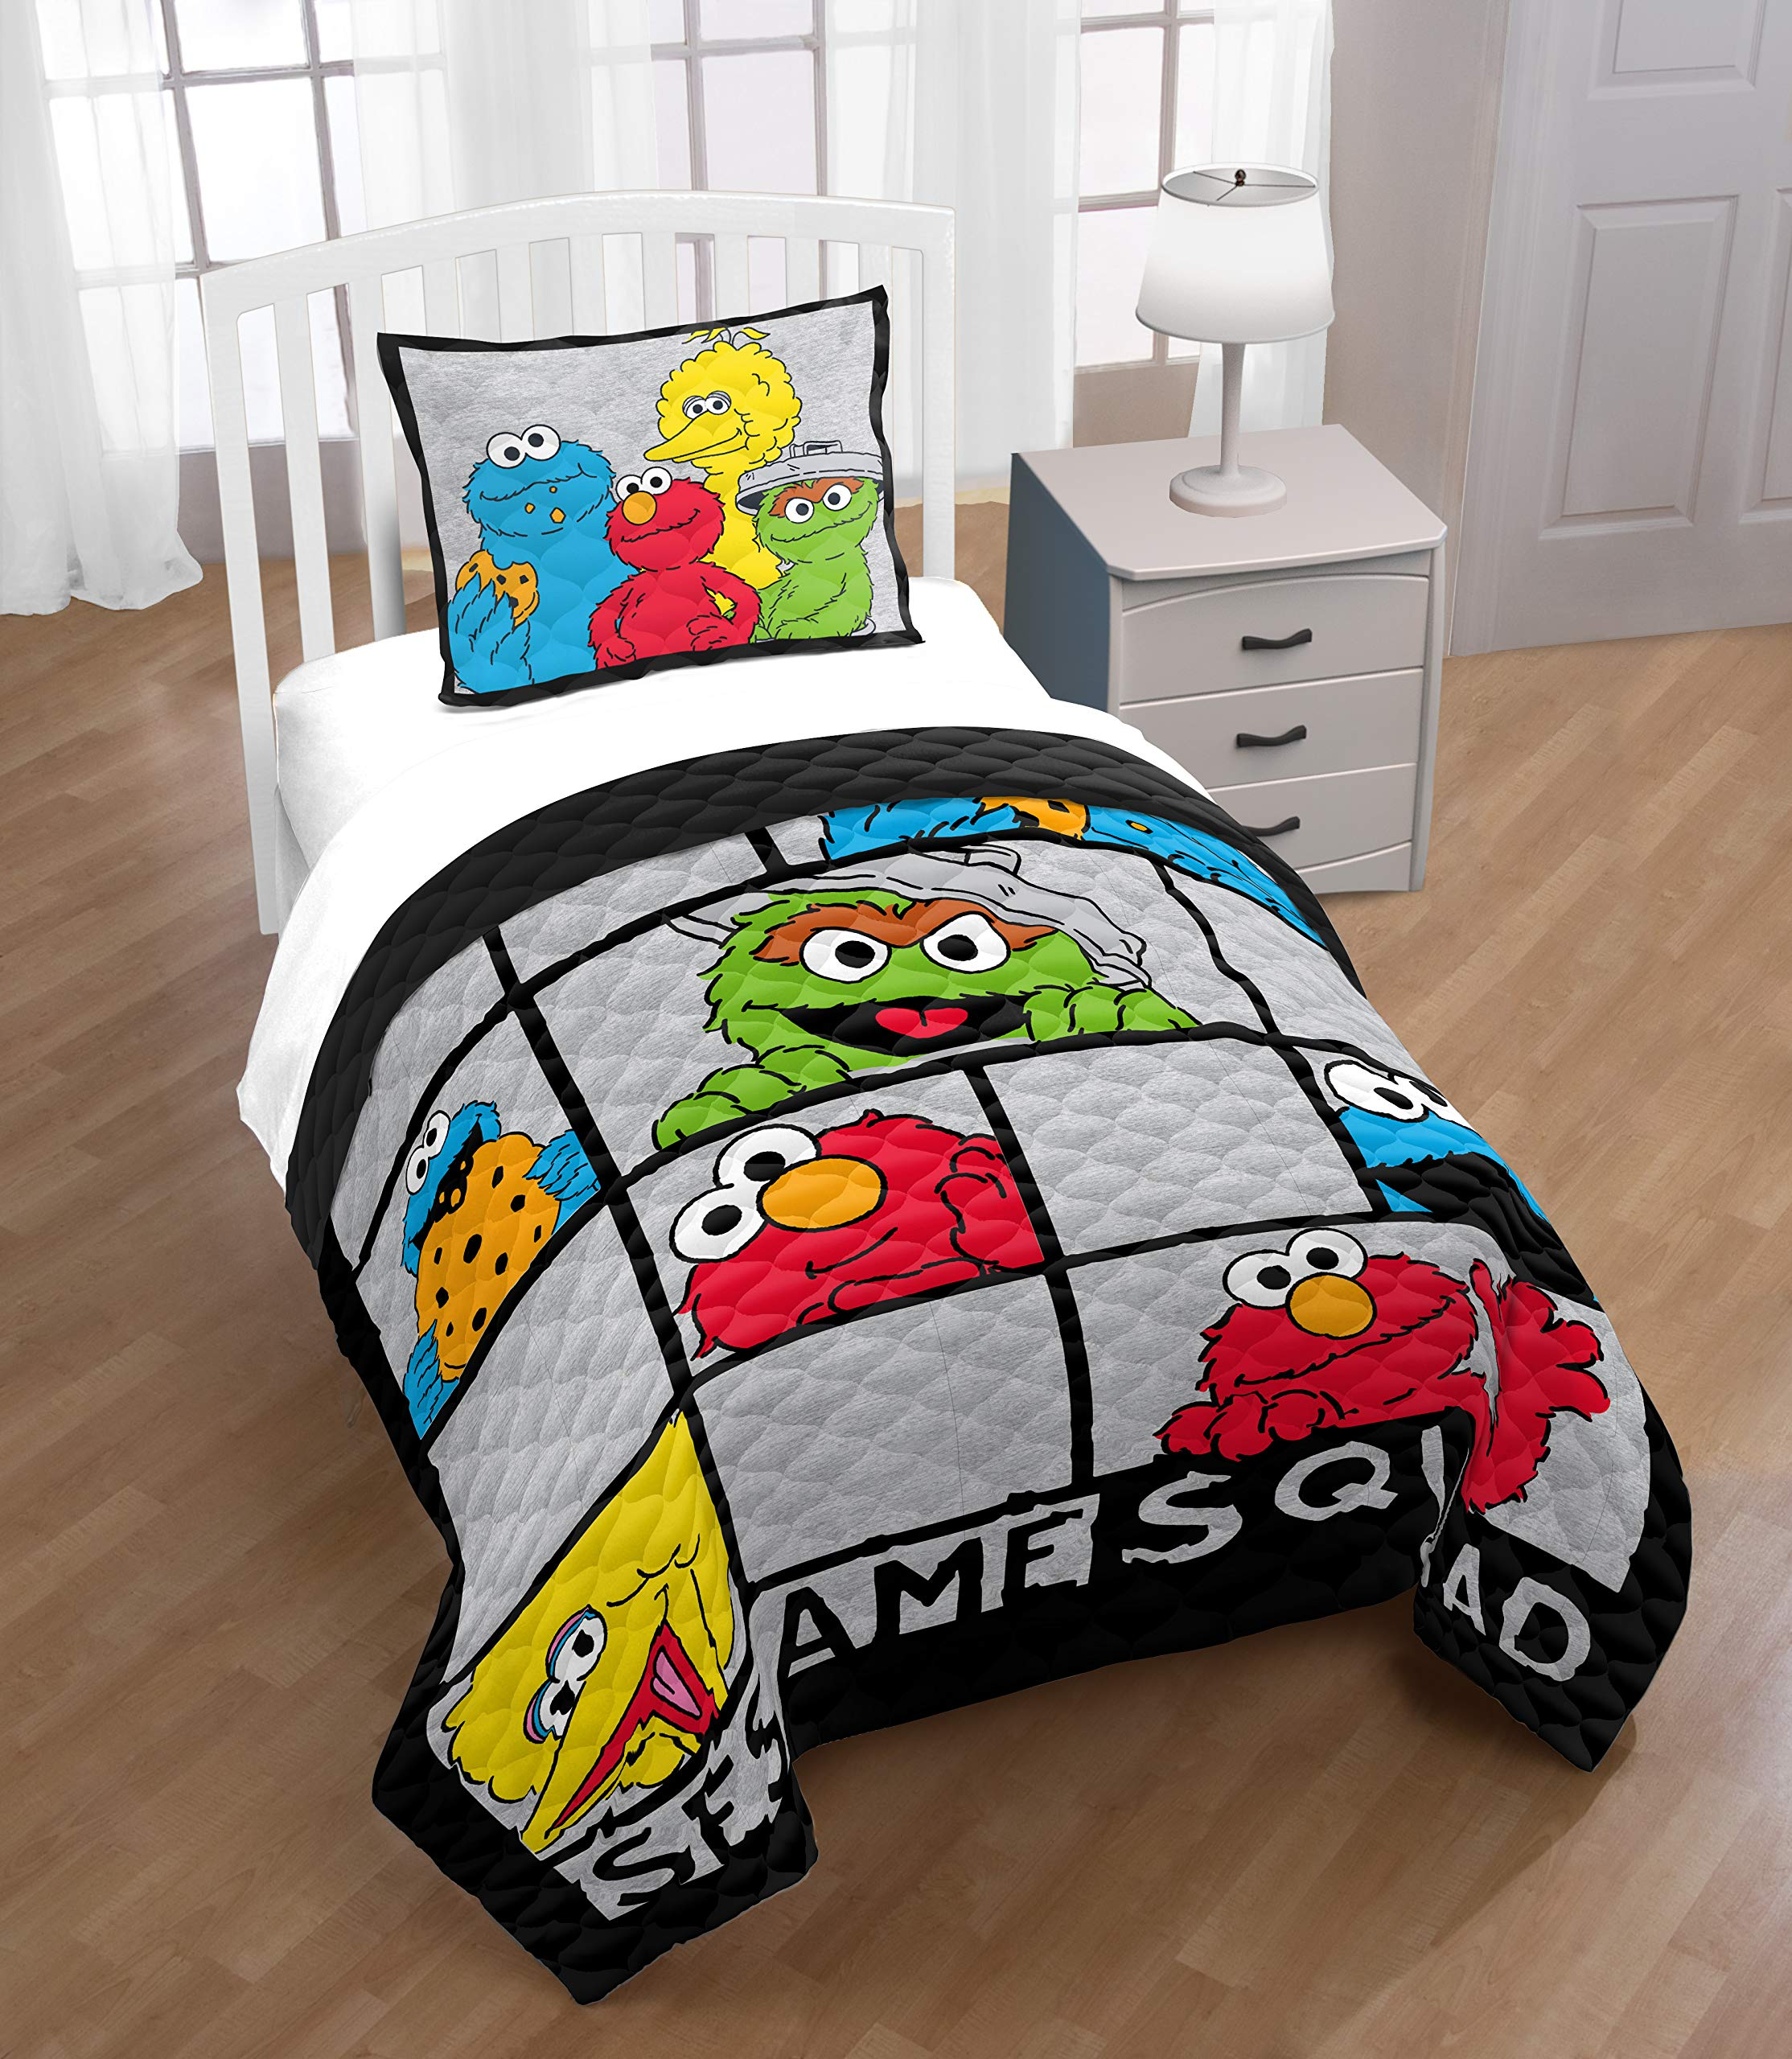 Jay Franco Sesame Street Elmo Hip Twin/Full Quilt & Sham Set - Super Soft Kids Bedding Features Elmo - Fade Resistant Polyester (Official Sesame Street Product)